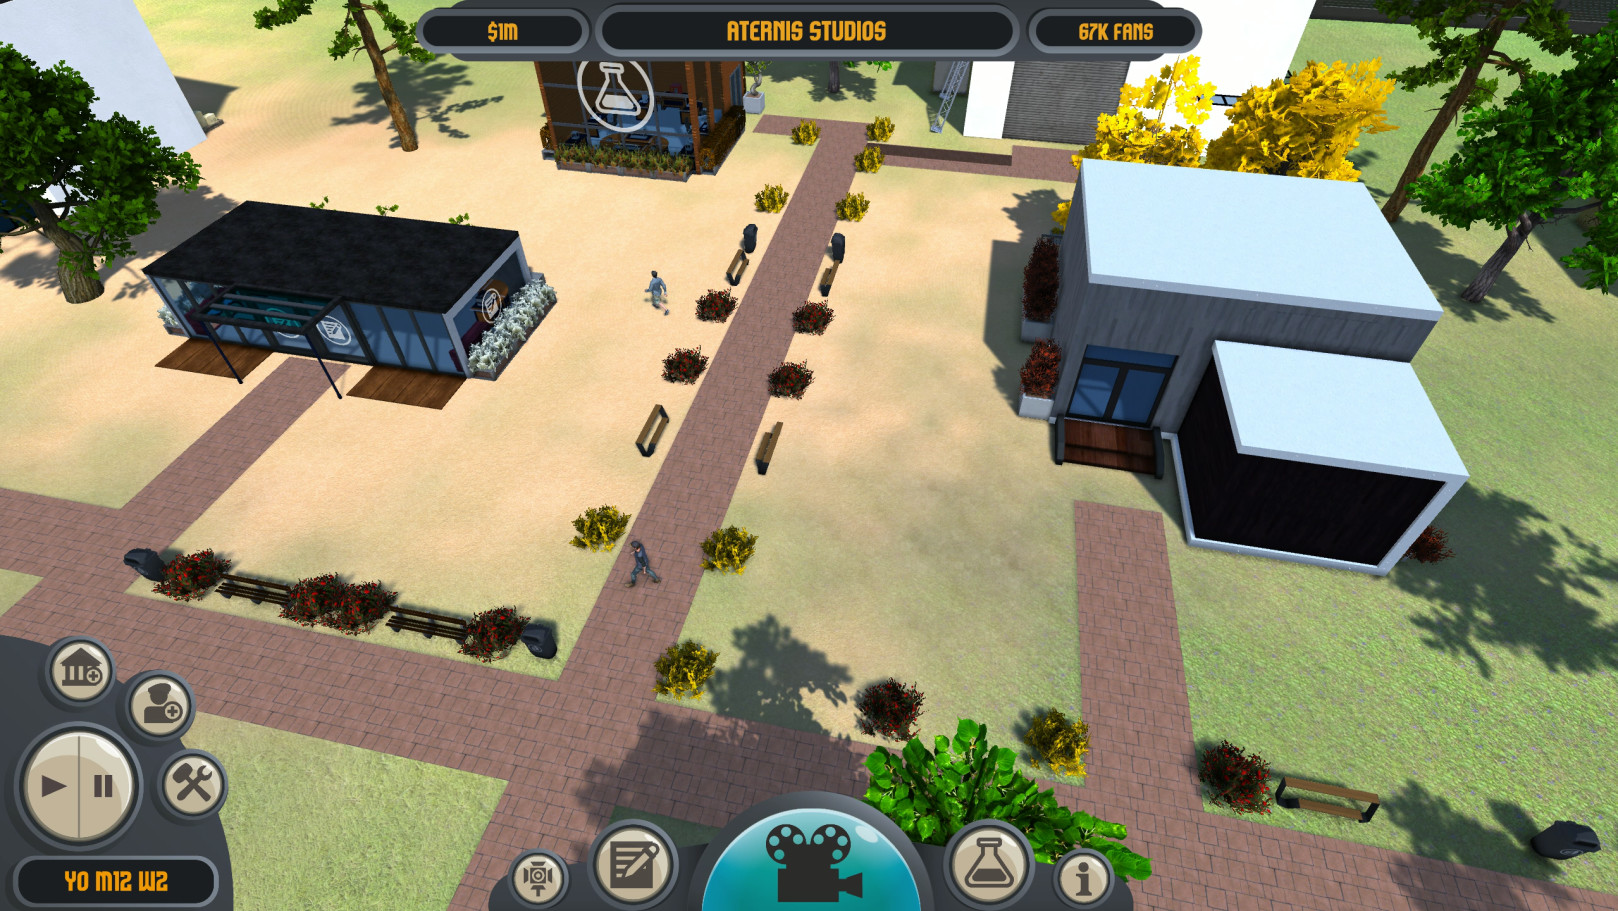 Filmmaker Tycoon is a next generation movie tycoon simulation game! You're the producer of your very own movie studio! Hire actors, build movie sets, make films, move up in the industry, and watch your finished films in Filmmaker Tycoon.